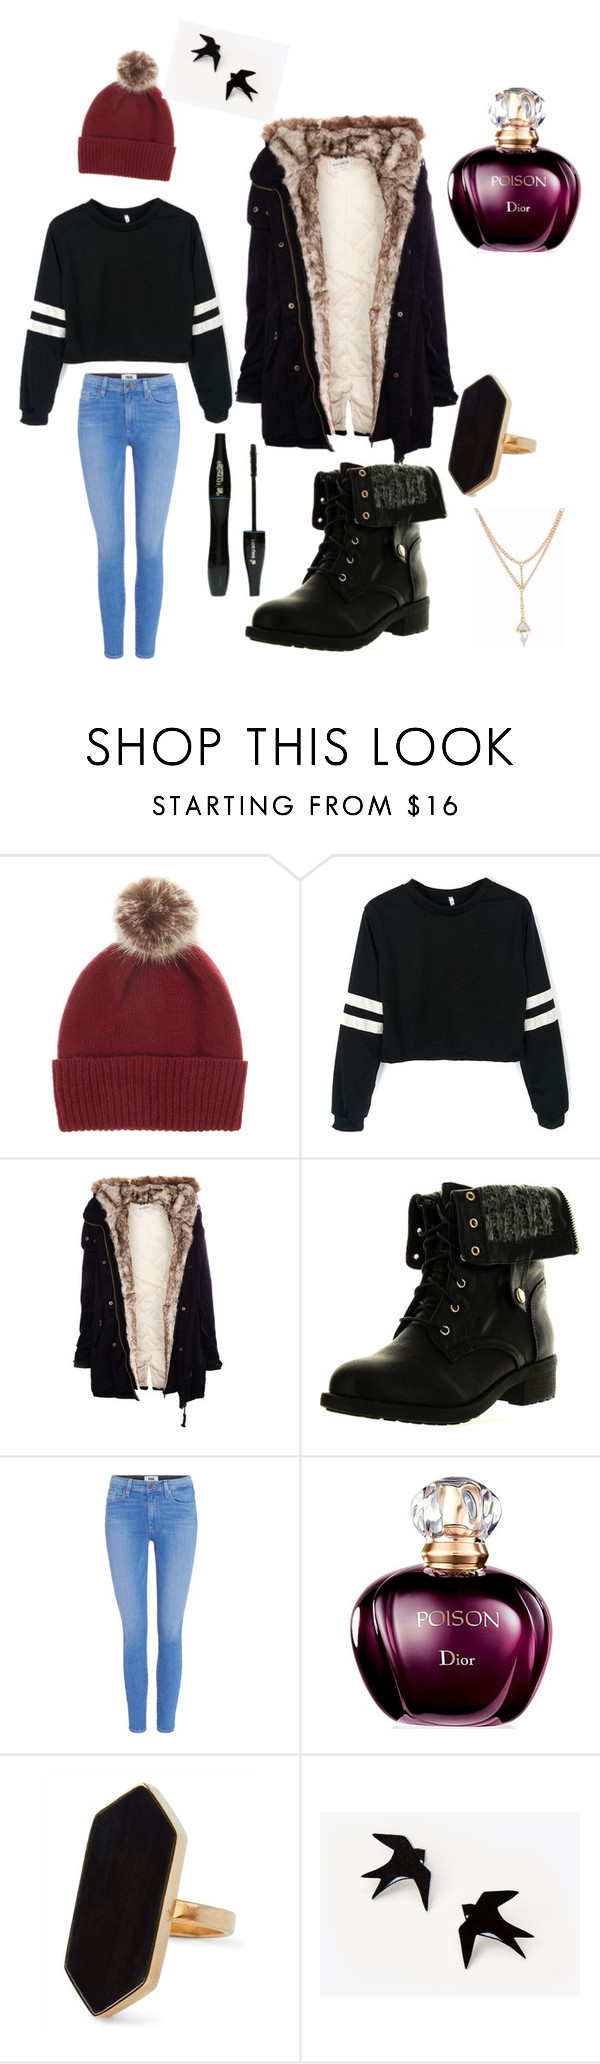 """""""Cozy day"""" by brokenheart019 ❤ liked on Polyvore featuring Helen Moore, Pull&Bear, Refresh, Paige Denim, Lancôme and Jaeger"""